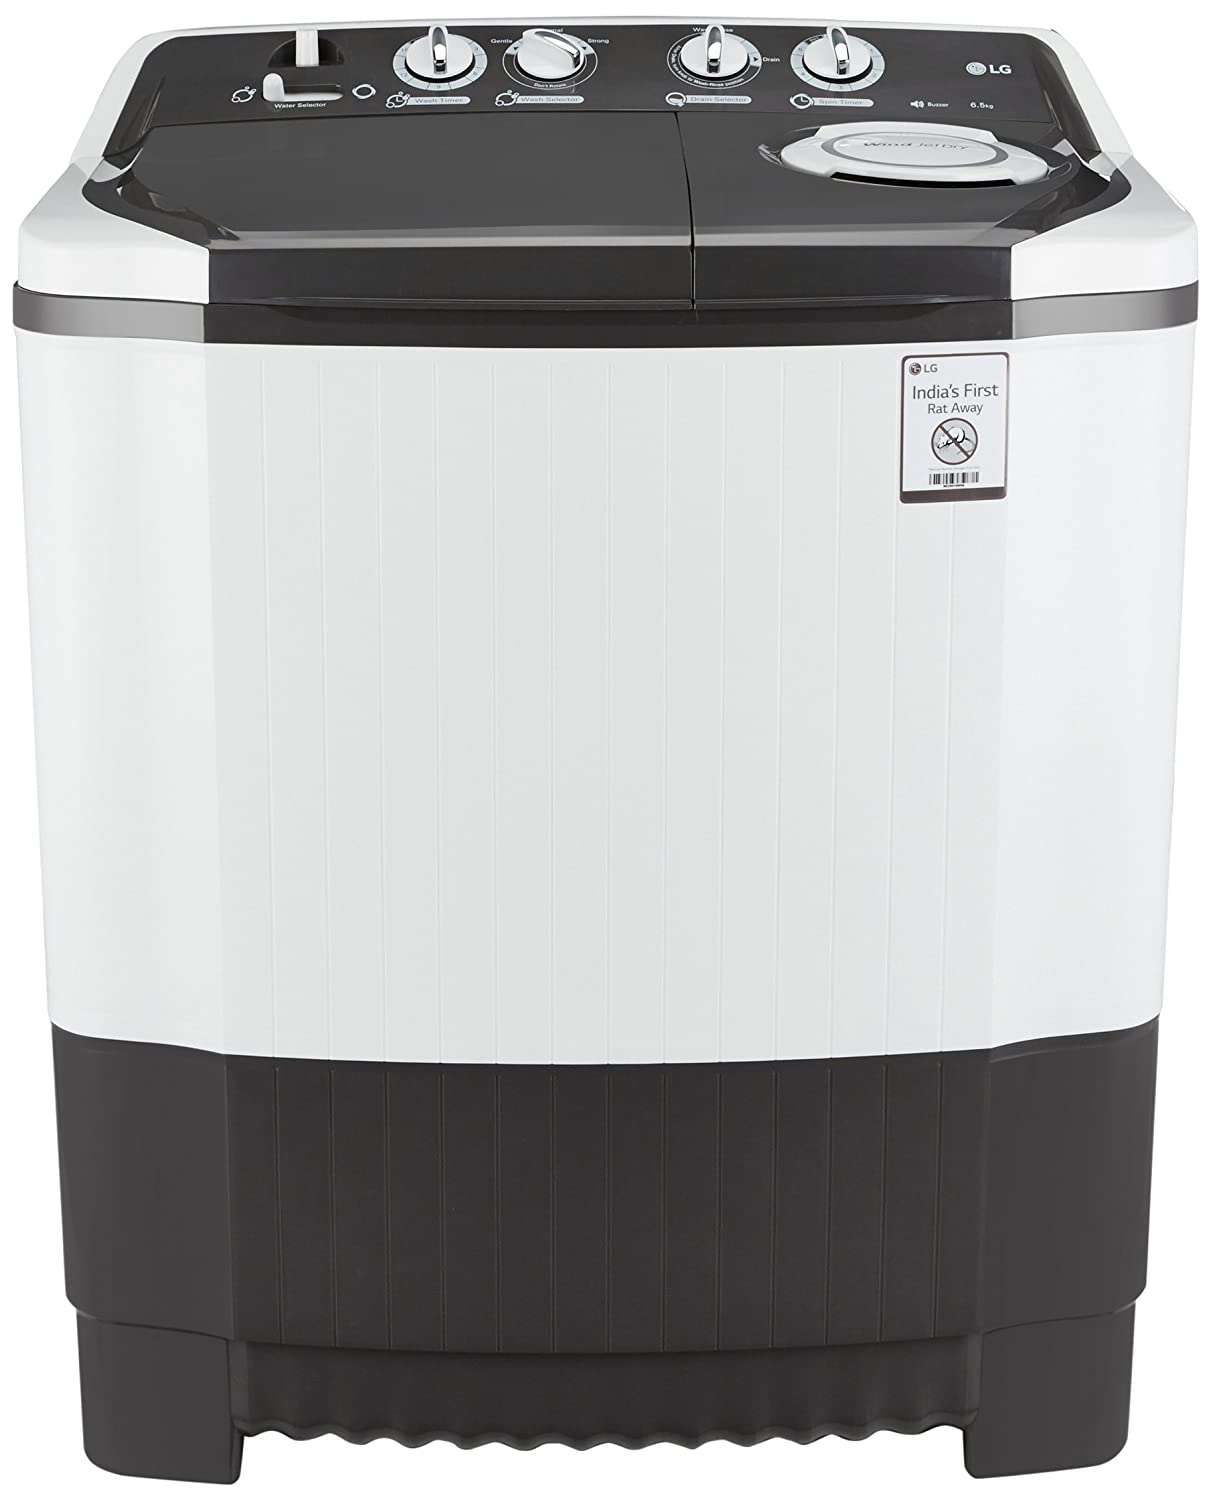 LG 6.5 kg Top Loading Semi Automatic Washing Machine